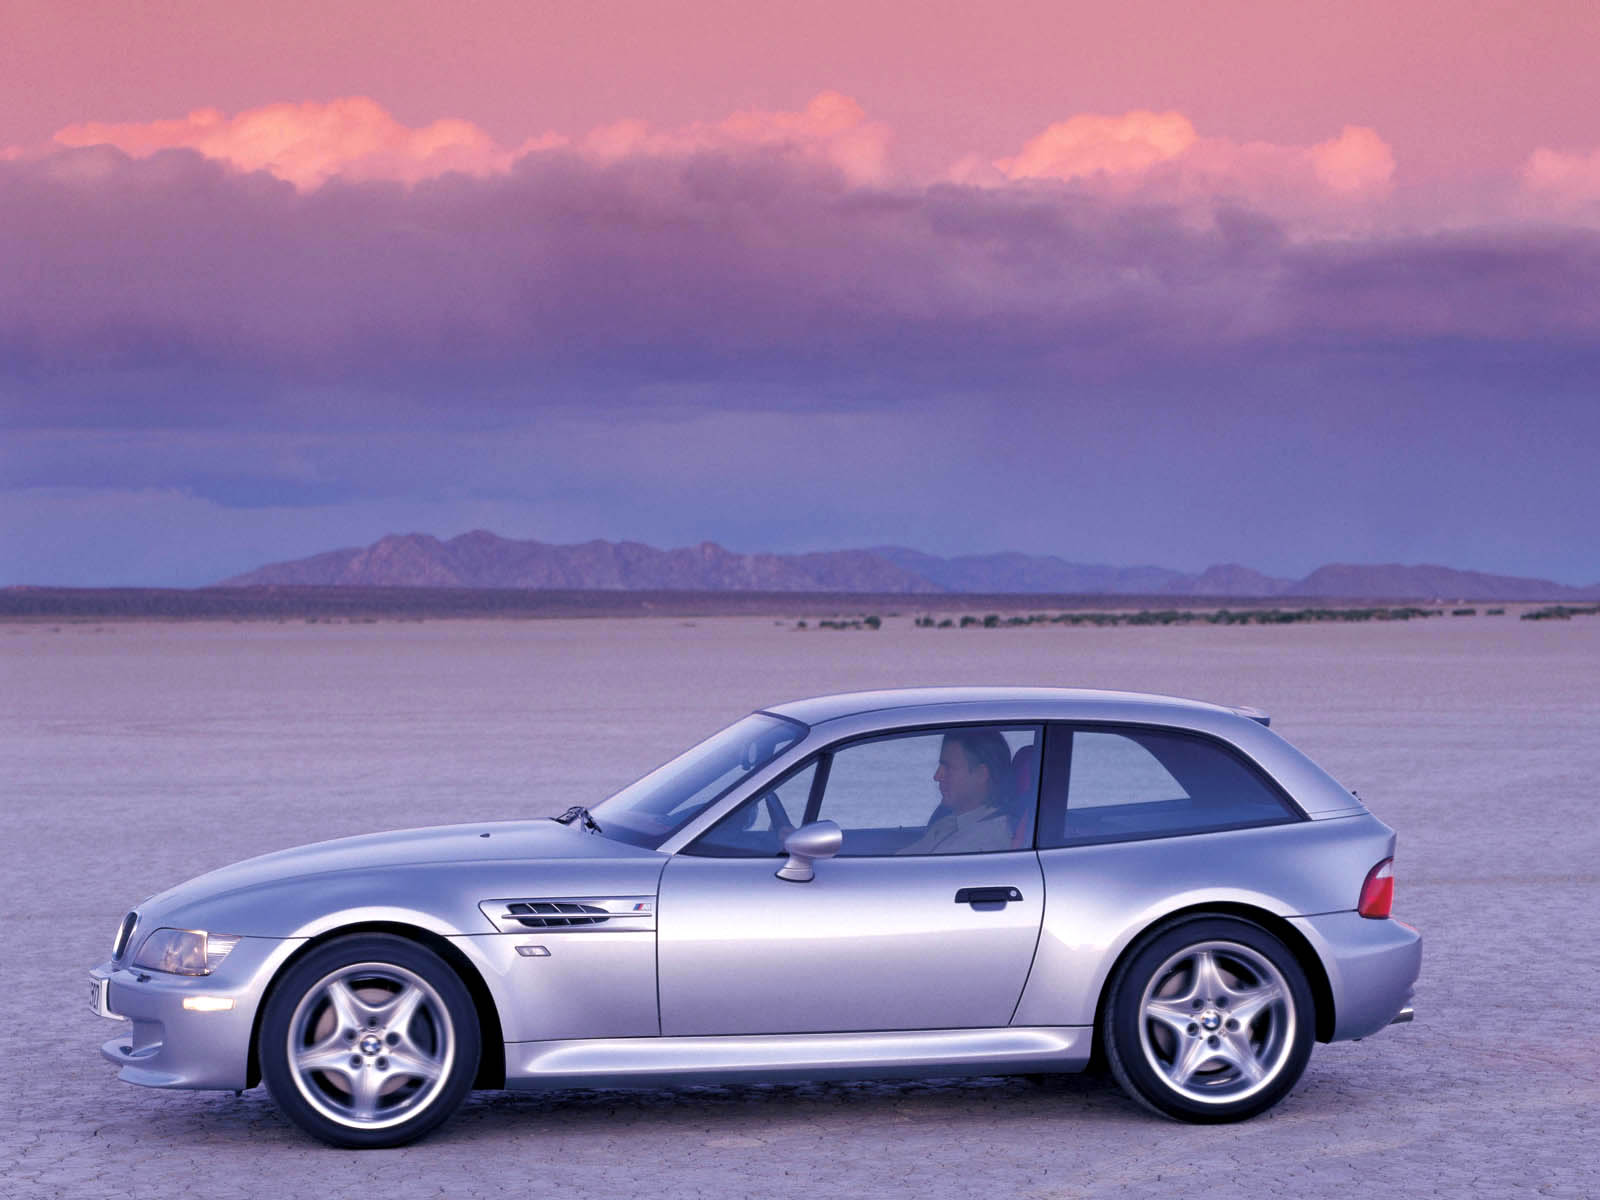 Bmw Z3 M Coupe Picture 10295 Bmw Photo Gallery Carsbase Com